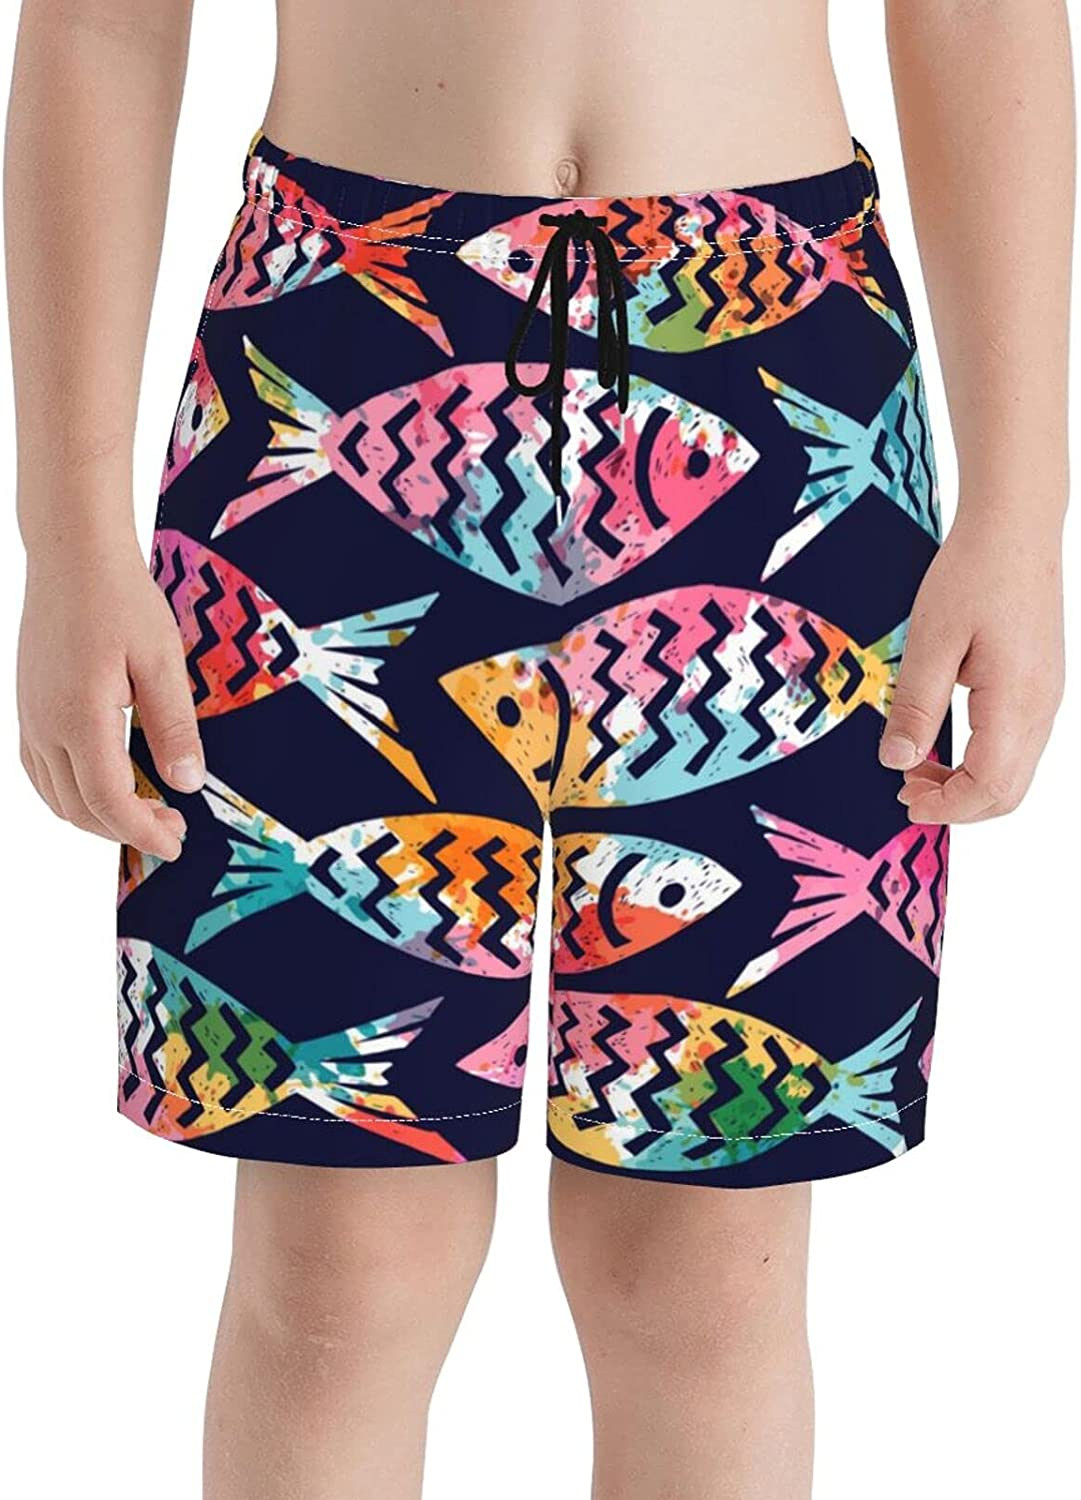 Fairy UMI Colored Fish Boys Quick Dry Swim Trunks Youth Fashion Beach Surfing Board Shorts 7-20 Years